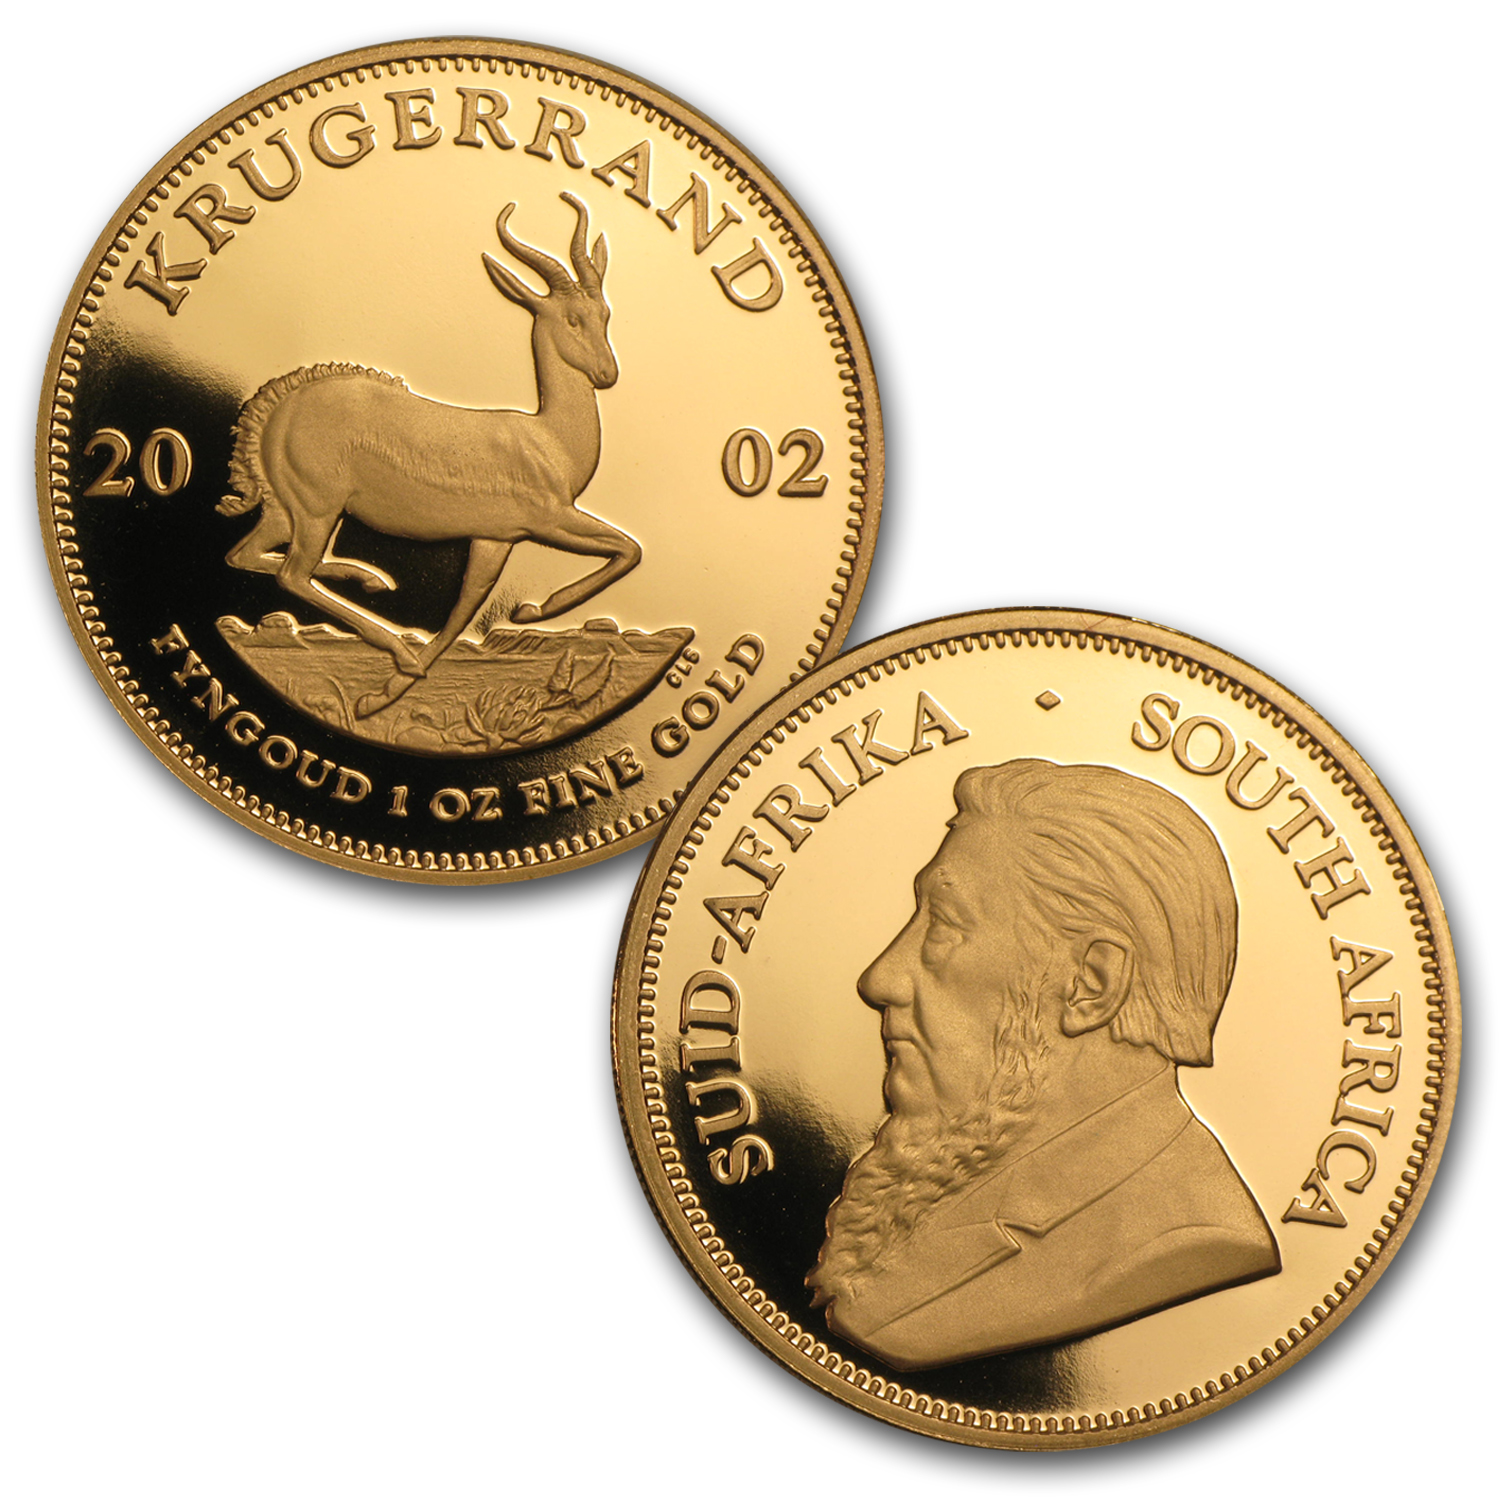 2002 South Africa 5-Coin Gold Krugerrand Proof Set (Veldpond)